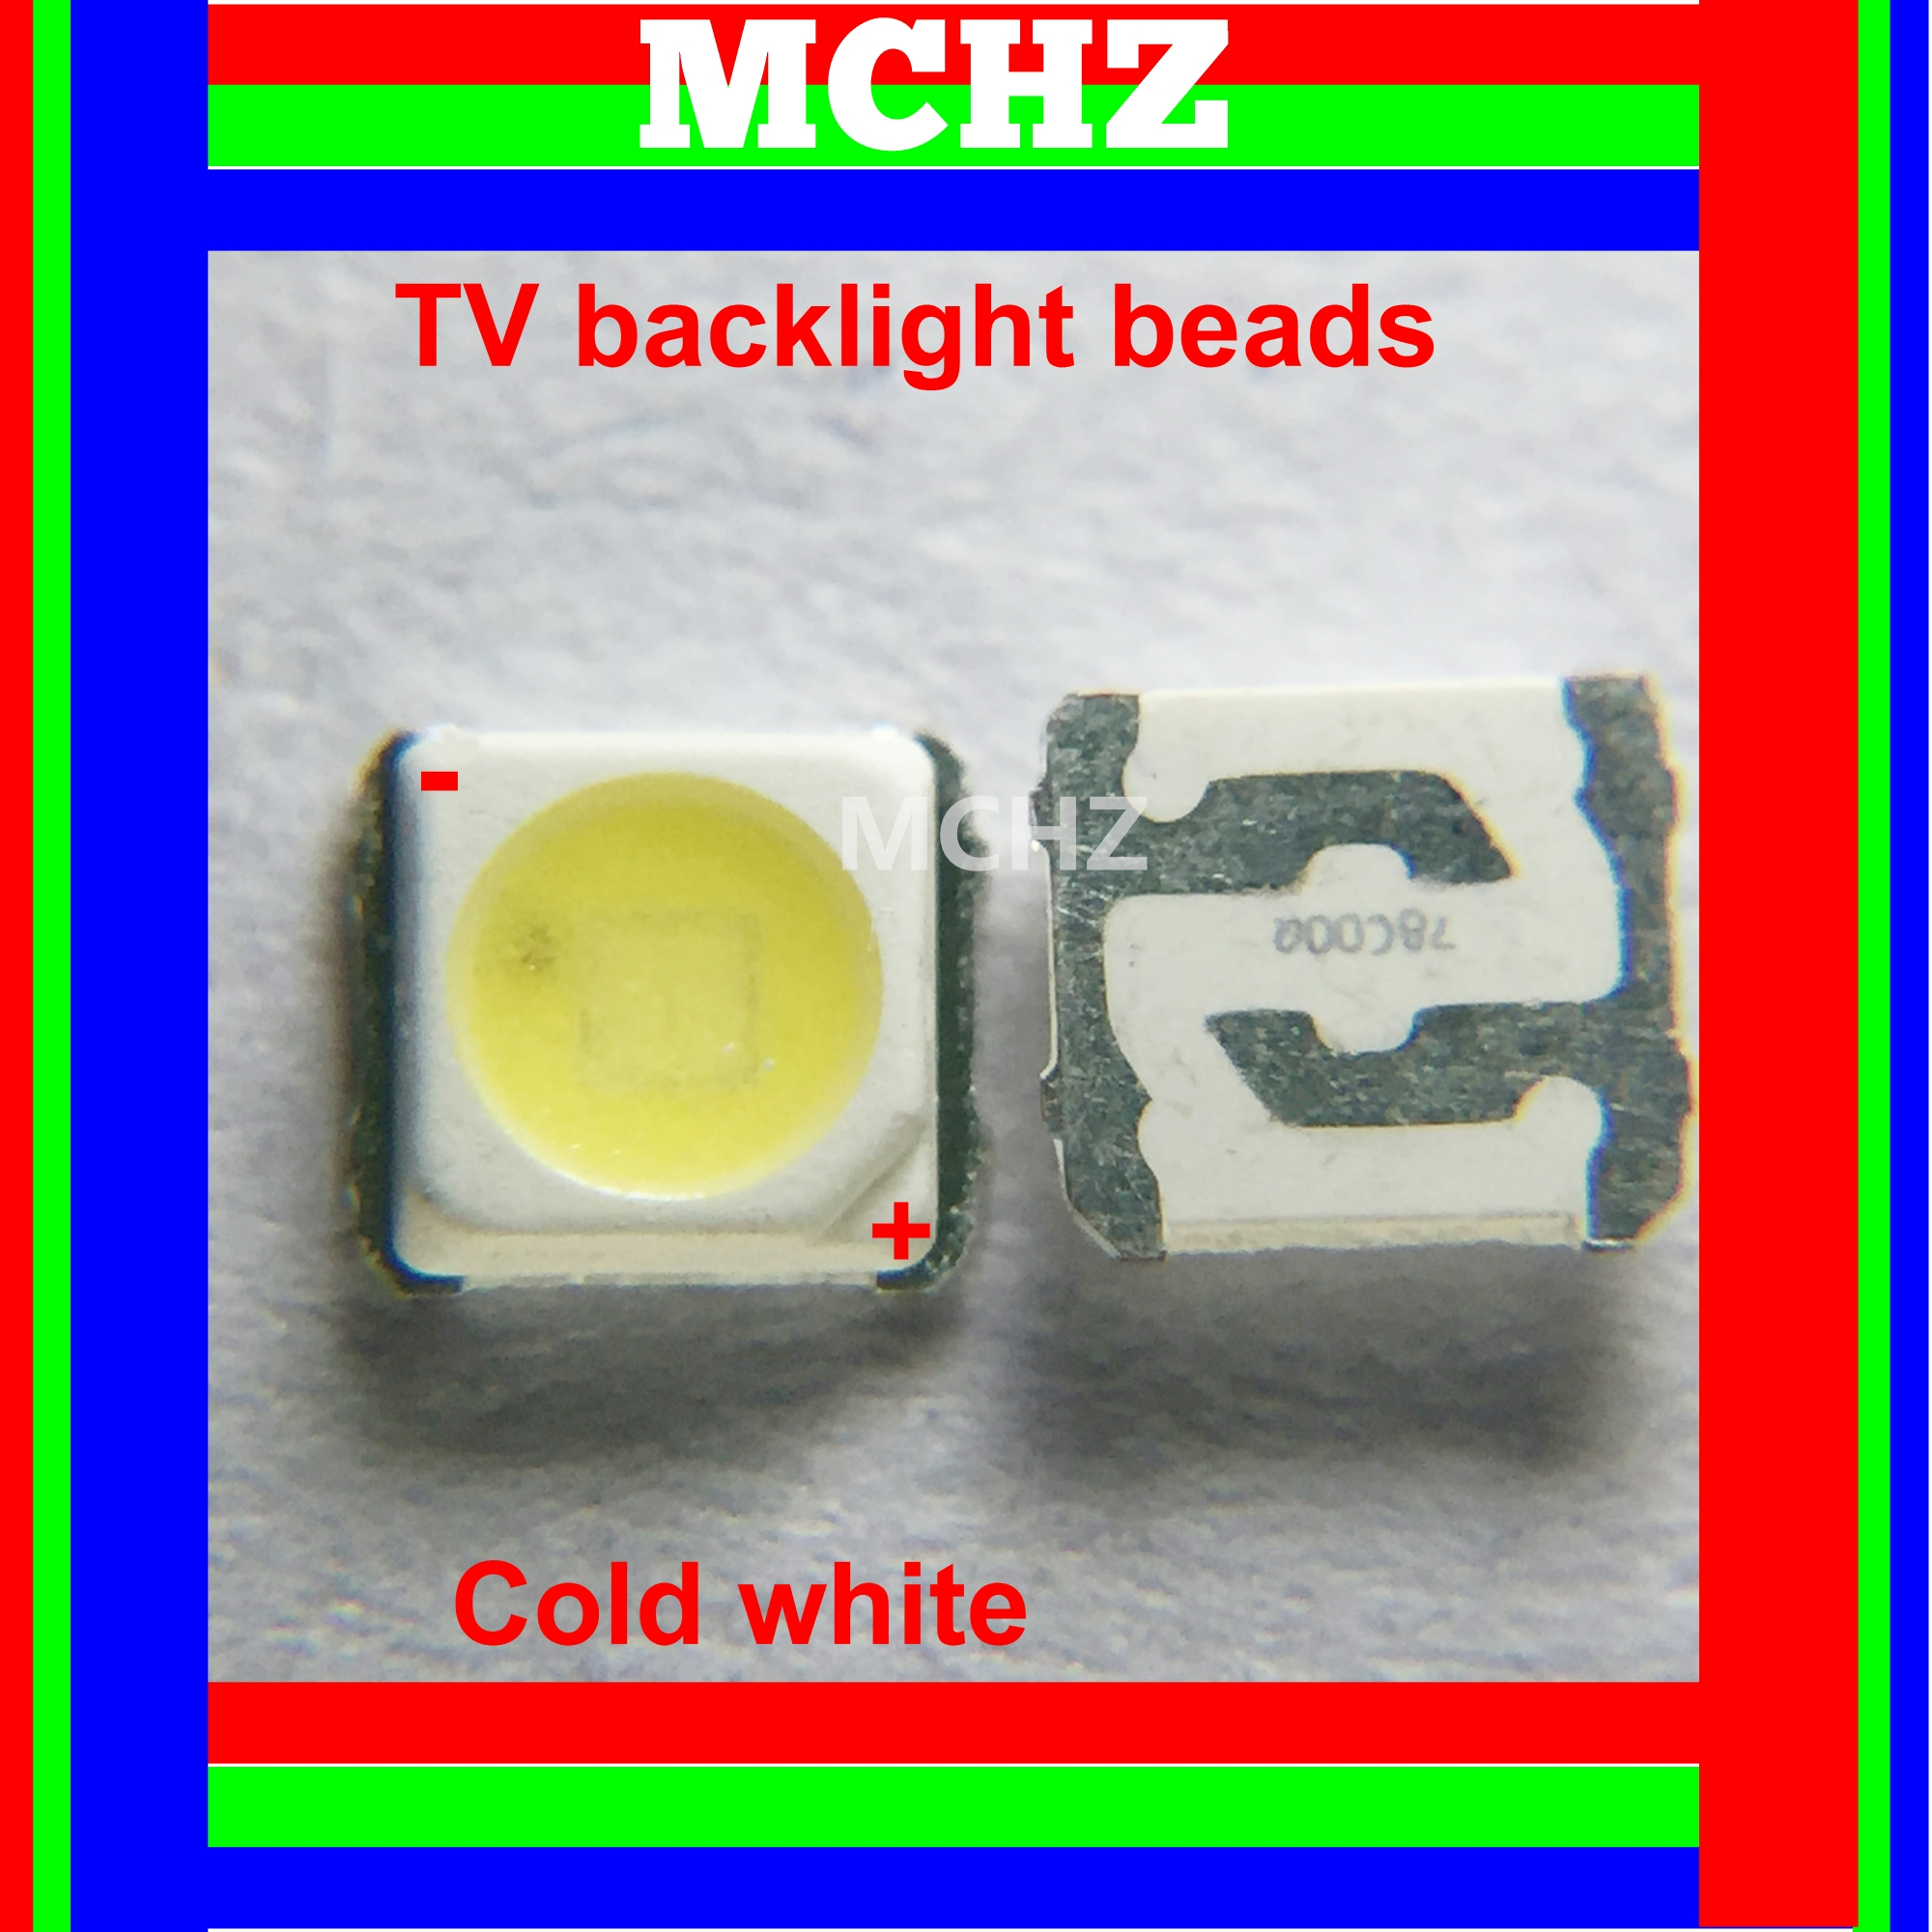 50PCS Samsung 3228 2828 LED SMD TV Backlight 3V 2W 700ma LED Beads Cool White For Samsung SPBWH1320S1EVC1B1B Free Shipping in Light Beads from Lights Lighting